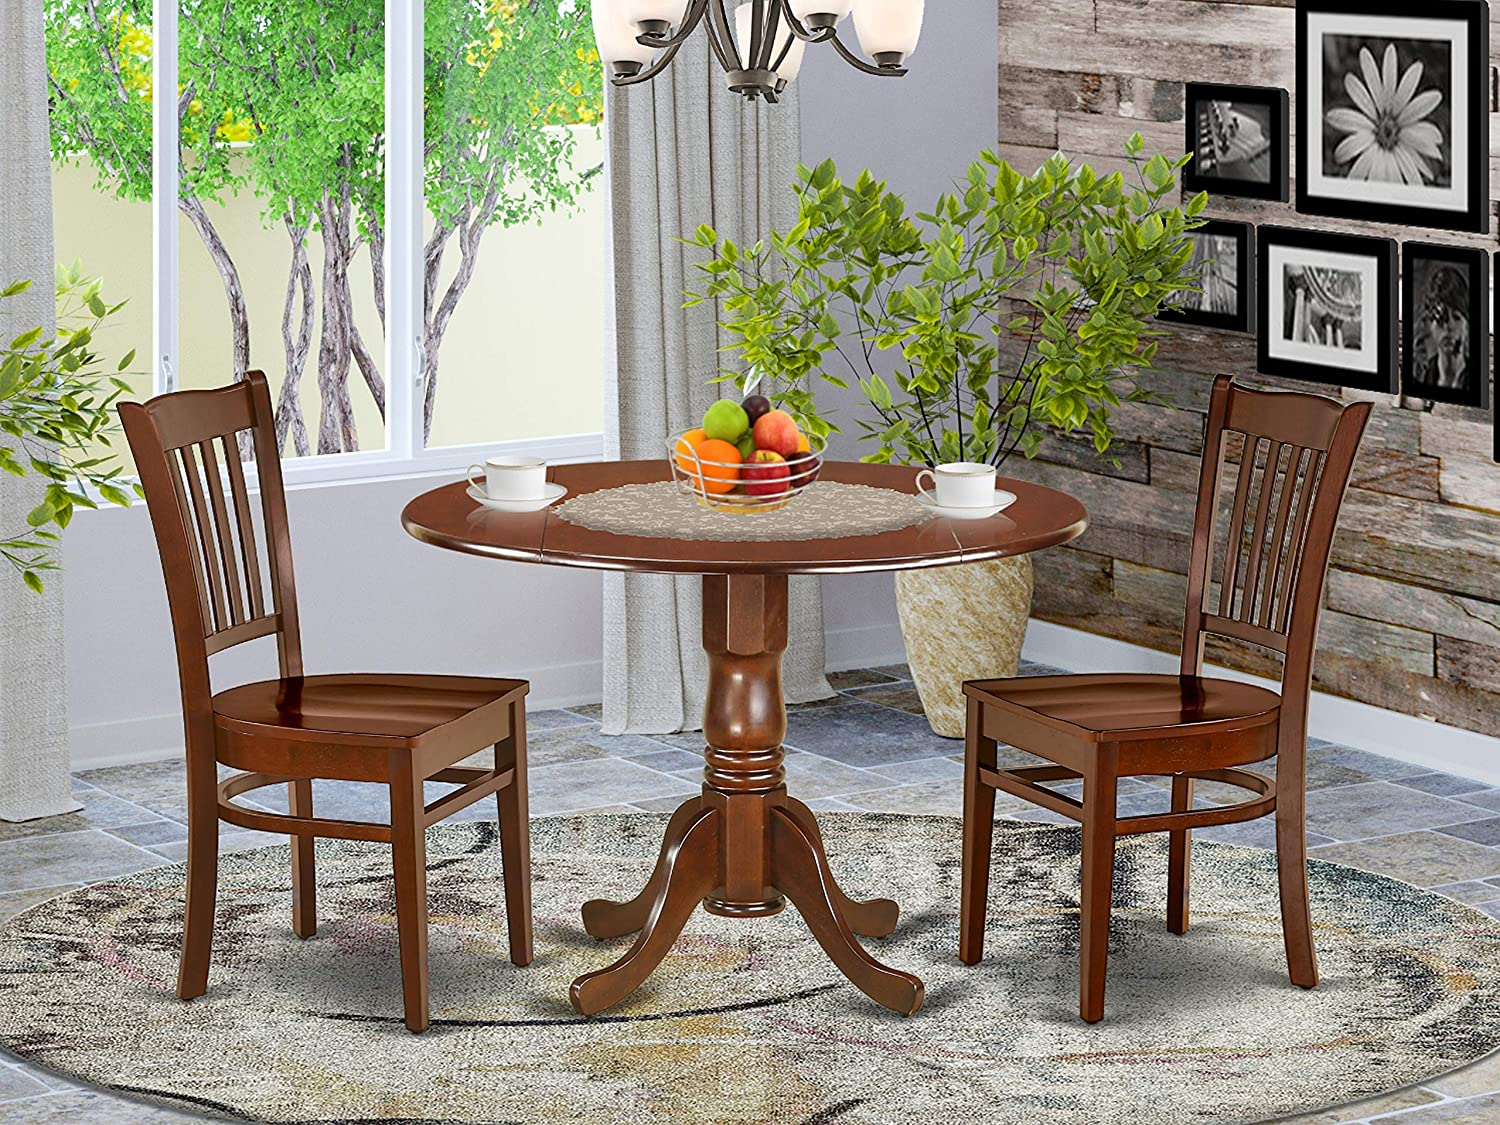 9Pc Round 9 Inch Dining Table With Two 9 Inch Drop Leaves And 9 Wood Seat  Chairs